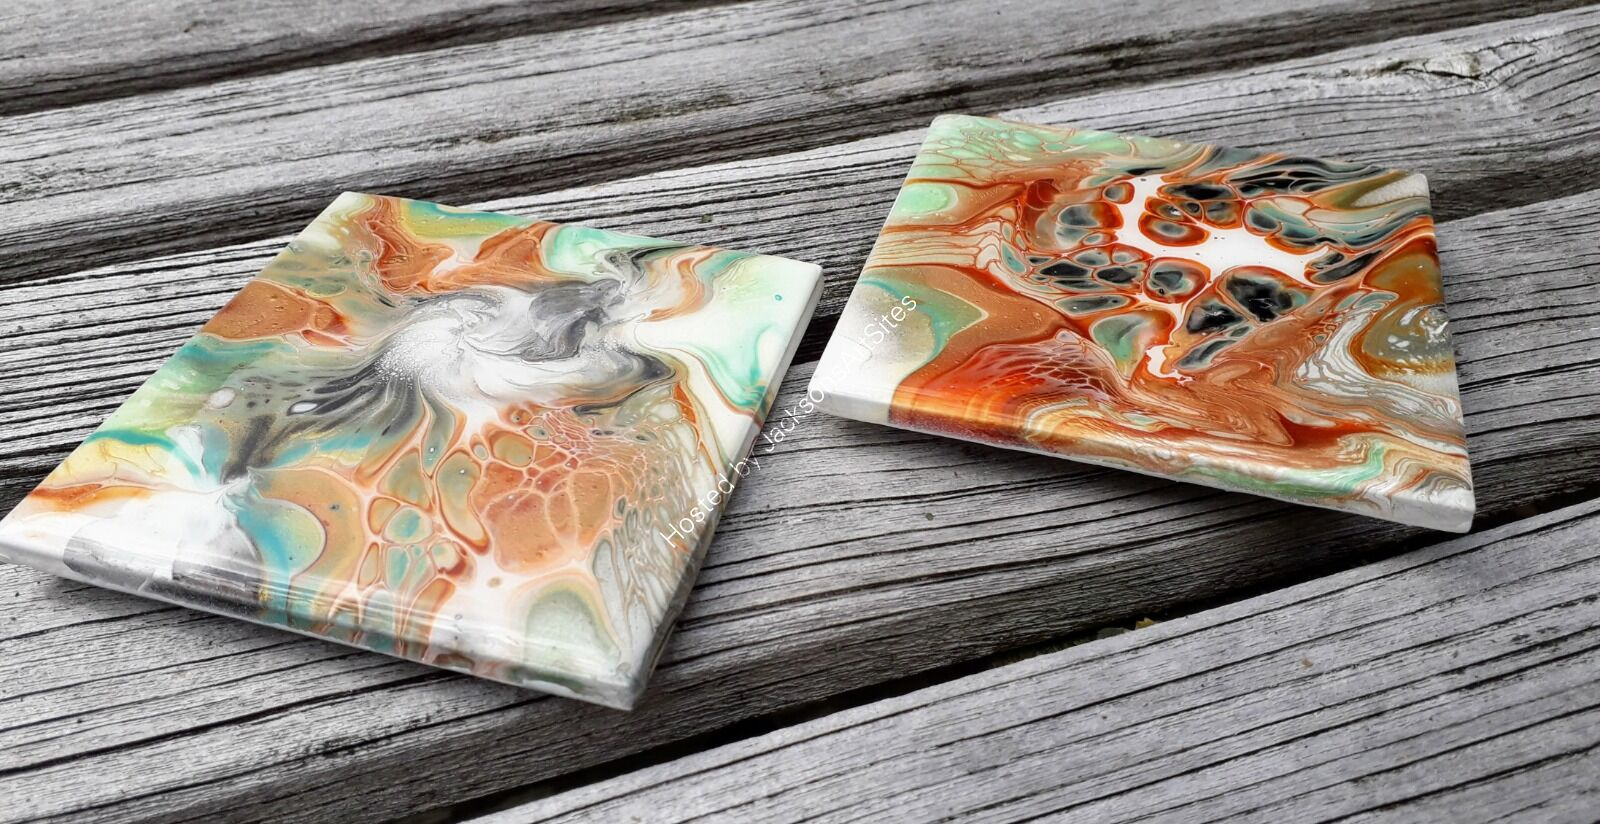 Two Copper, Green, Black & White Coasters